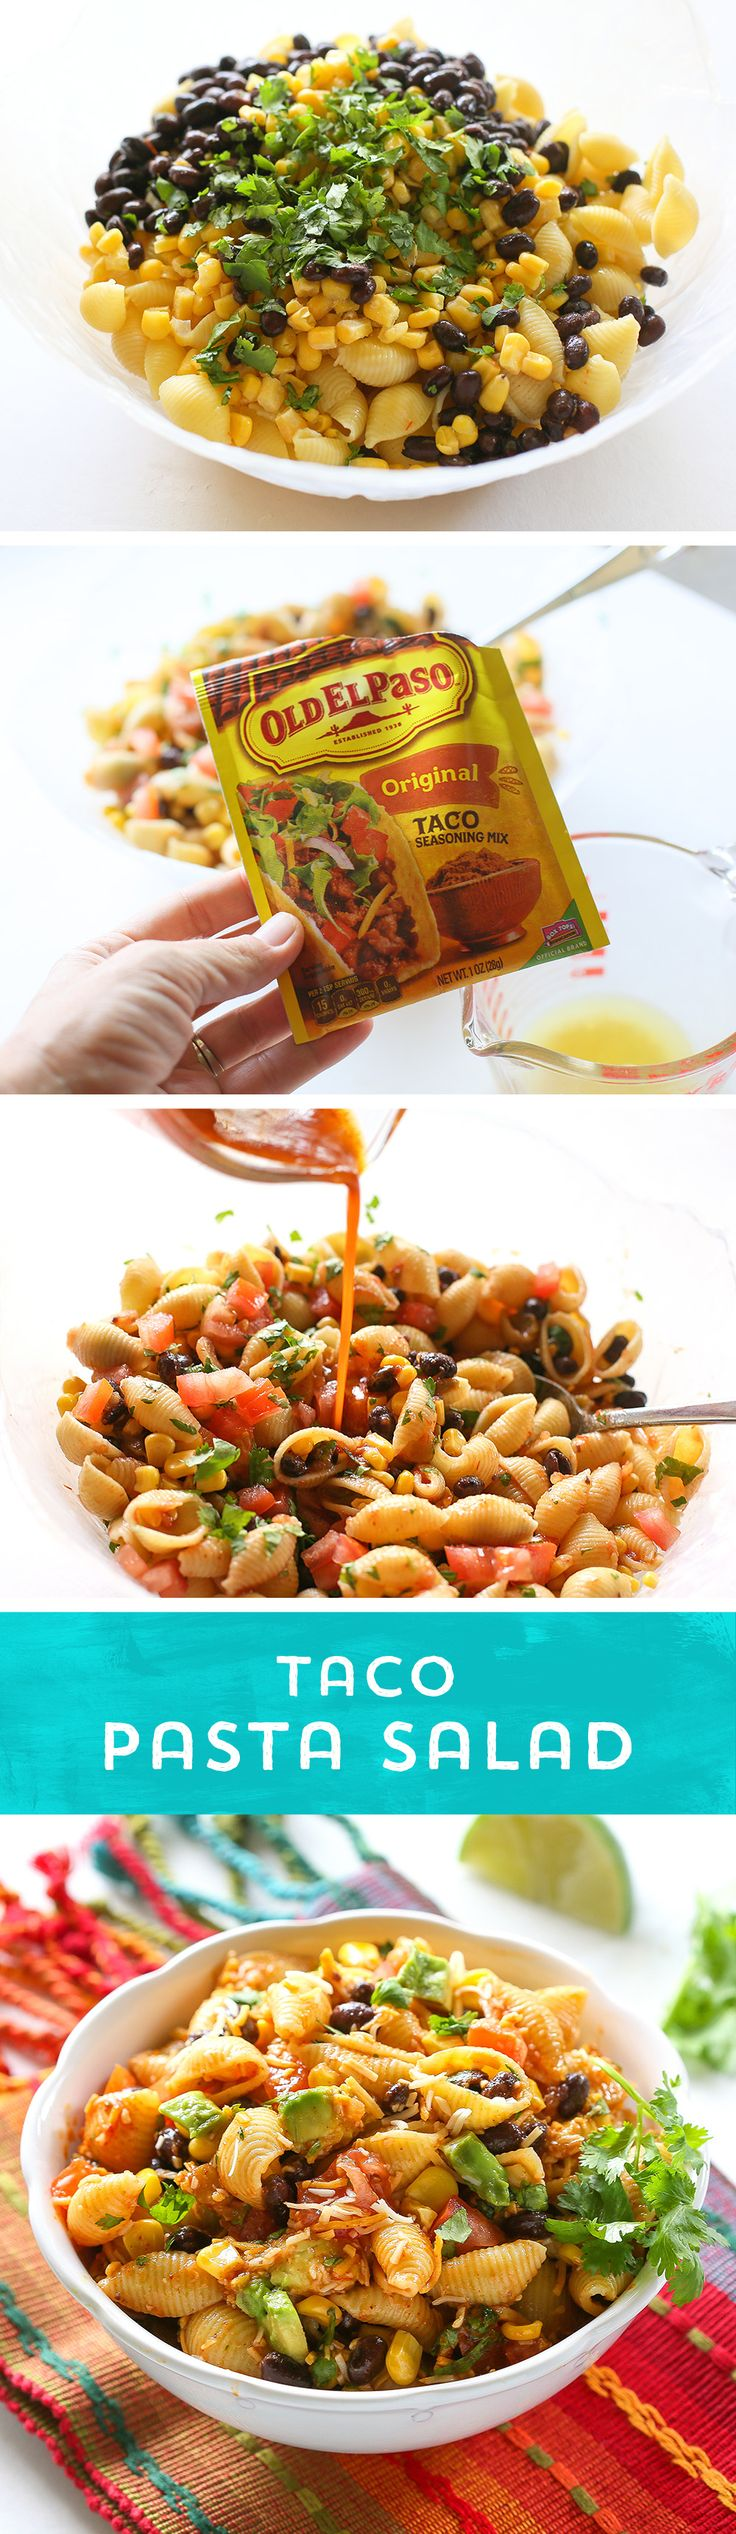 Need something to bring to your pot luck or picnic? This Taco Pasta Salad from @GirlWhoAte is perfect! It comes together quickly, and you can control the spice! Stand out at the party with this pasta salad with southwestern flair!